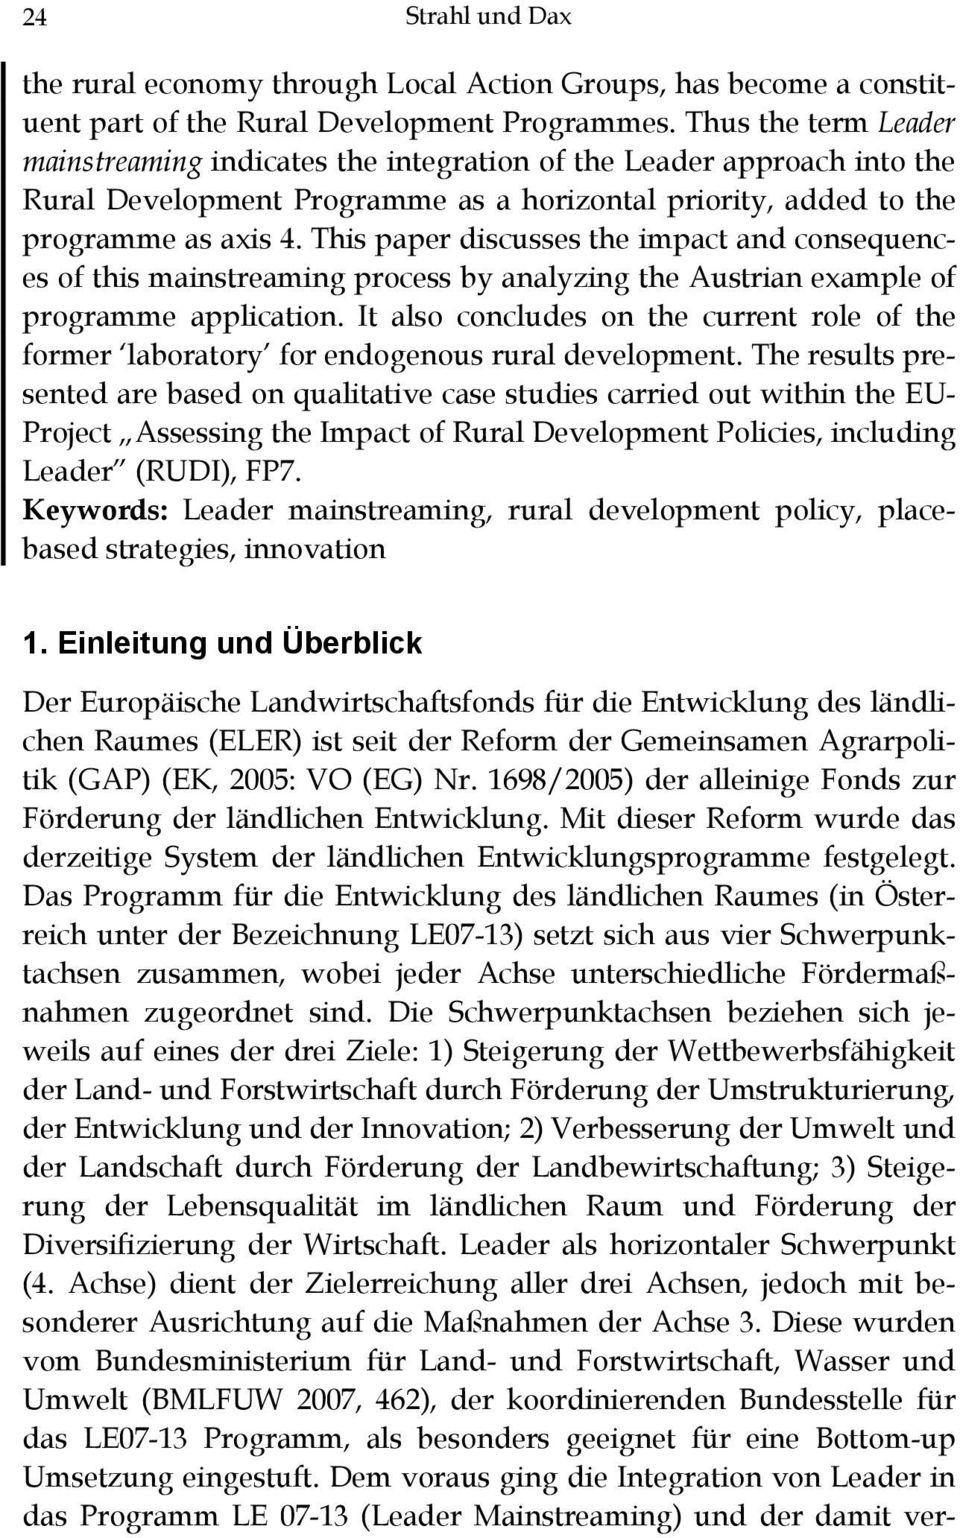 This paper discusses the impact and consequences of this mainstreaming process by analyzing the Austrian example of programme application.